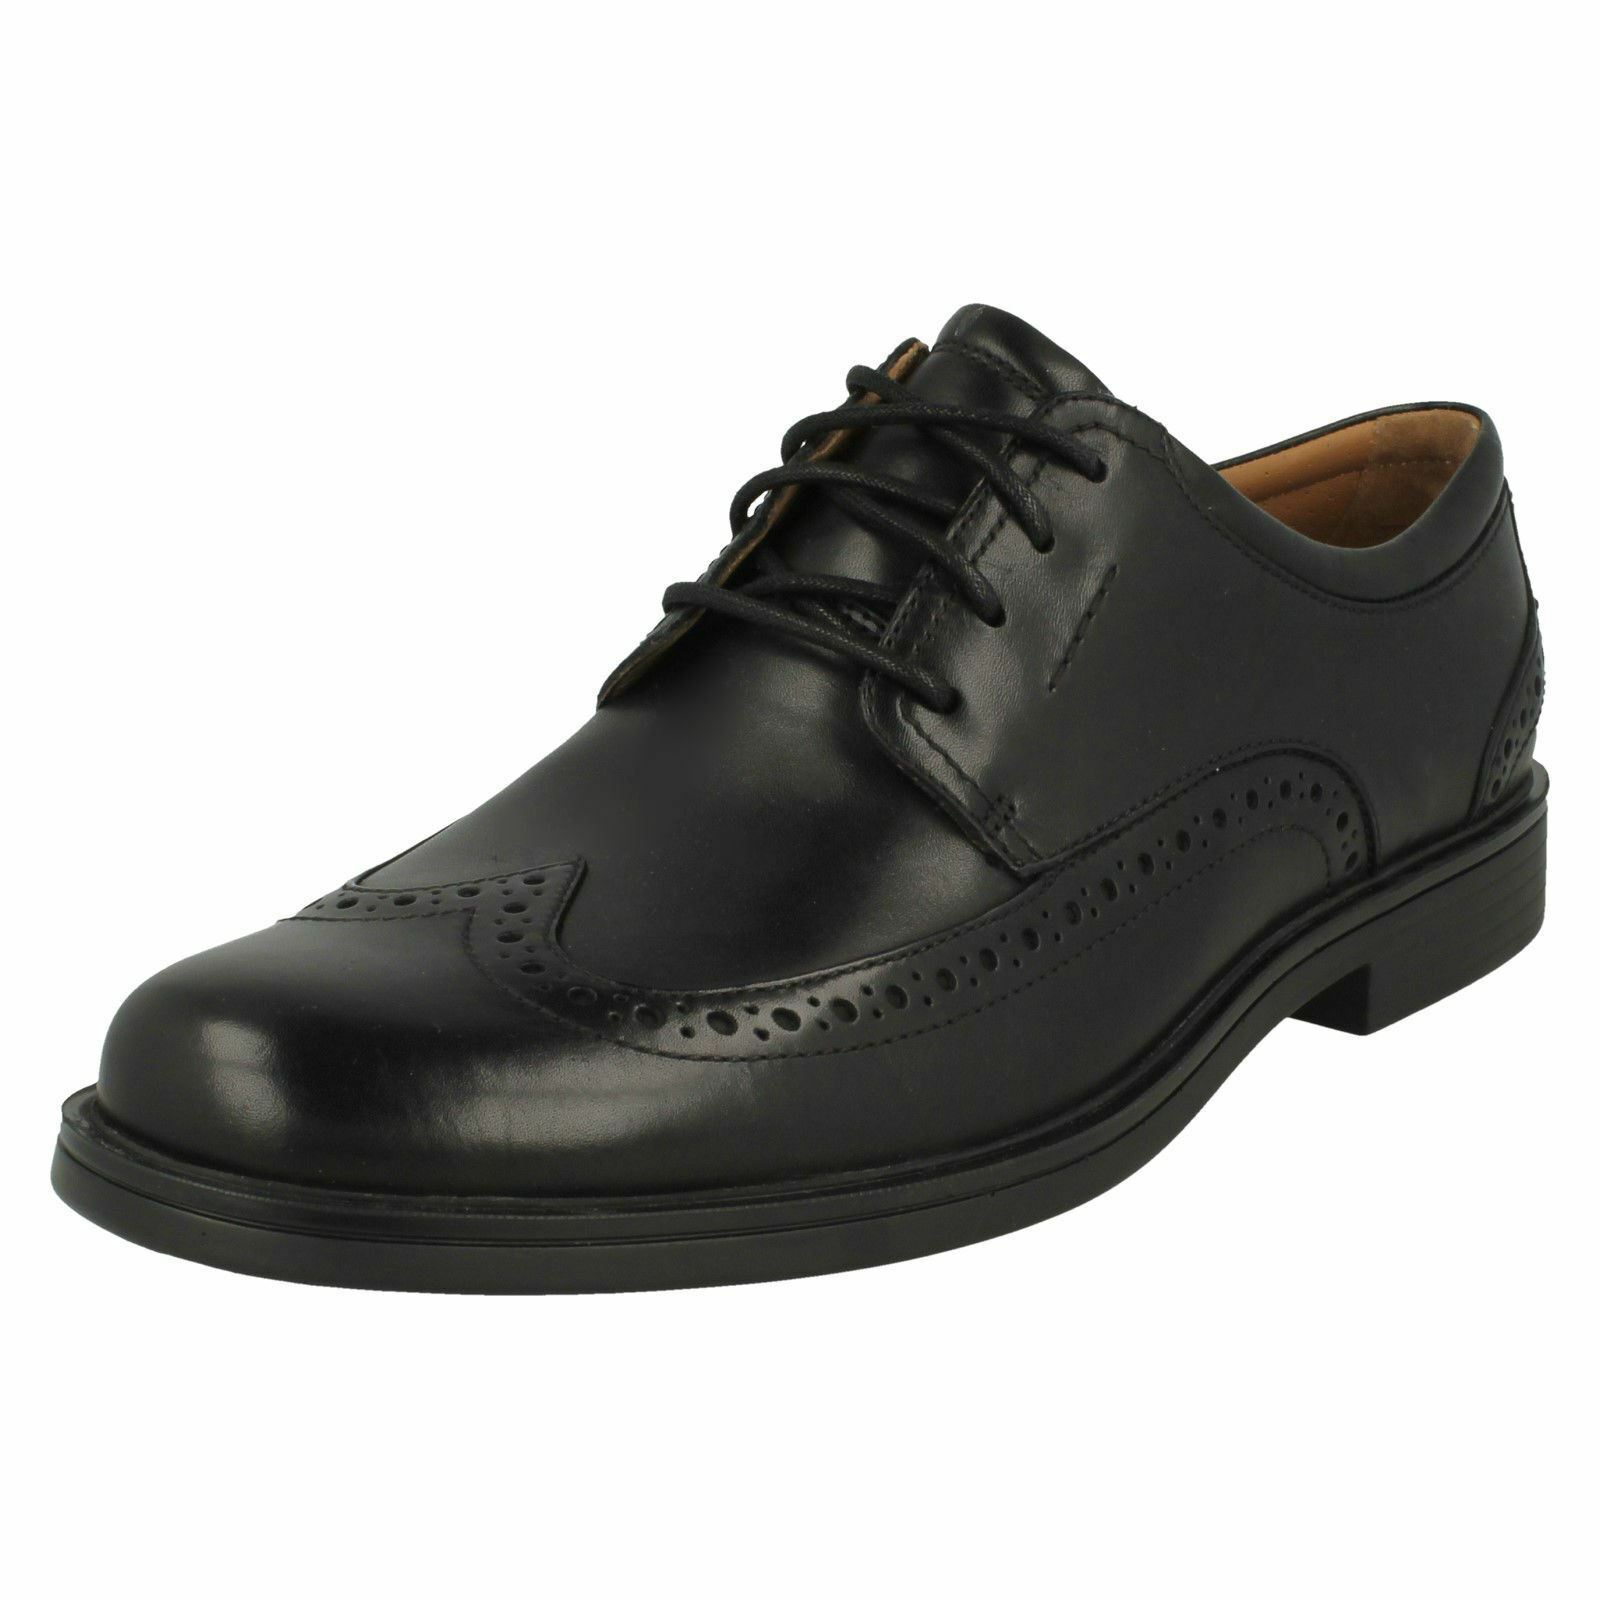 Mens Clarks Formal Wing Tip Shoes - Un Aldric Wing